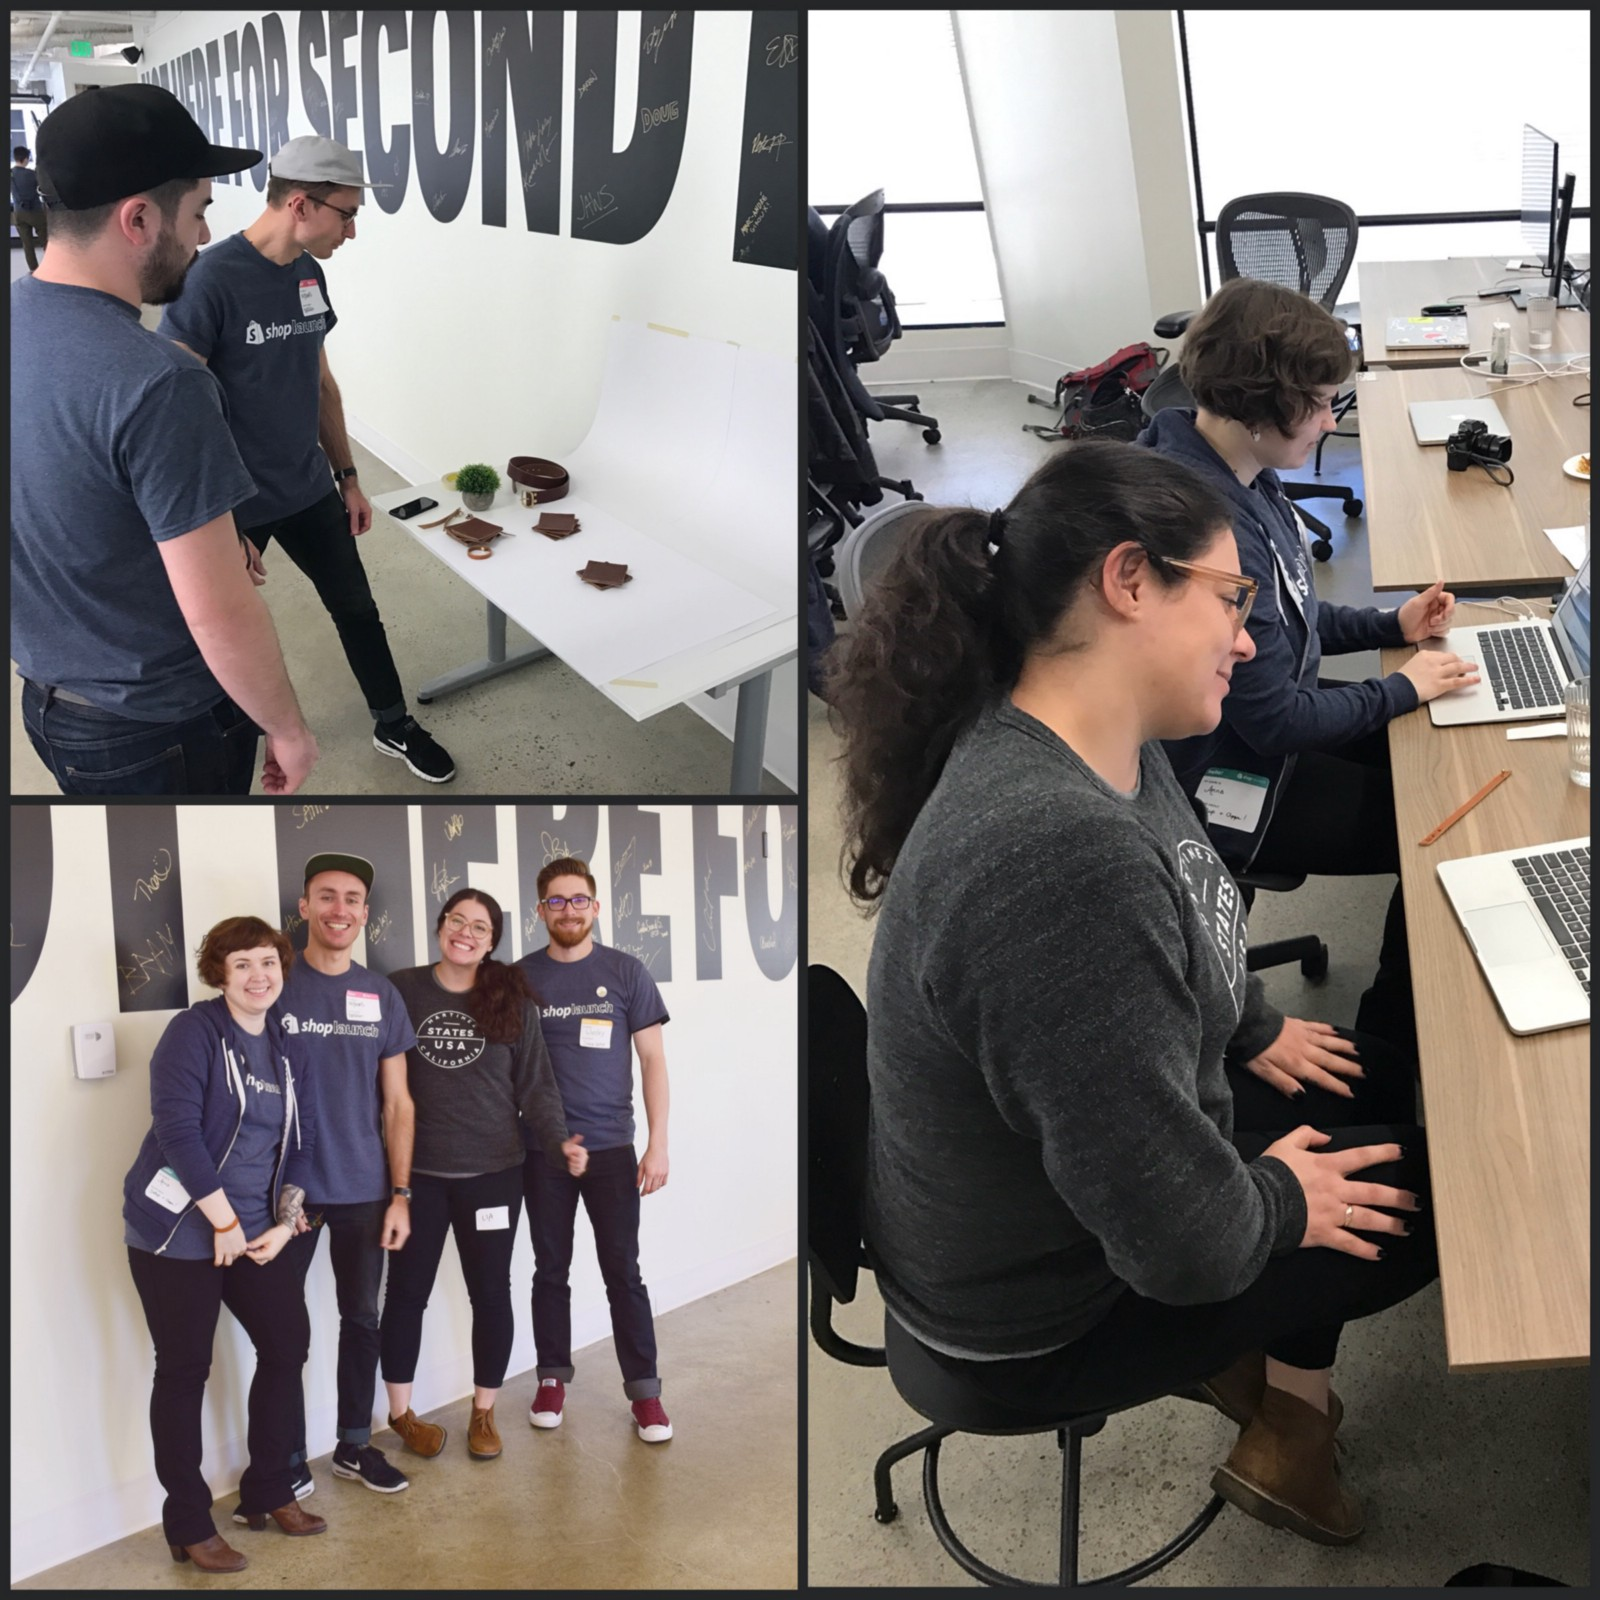 86fd7e11c4 ShopLaunch is an incredible one-of-a-kind 2-day event happening today and  tomorrow at Shopify s San Francisco office with a singular goal  to help  turn ...